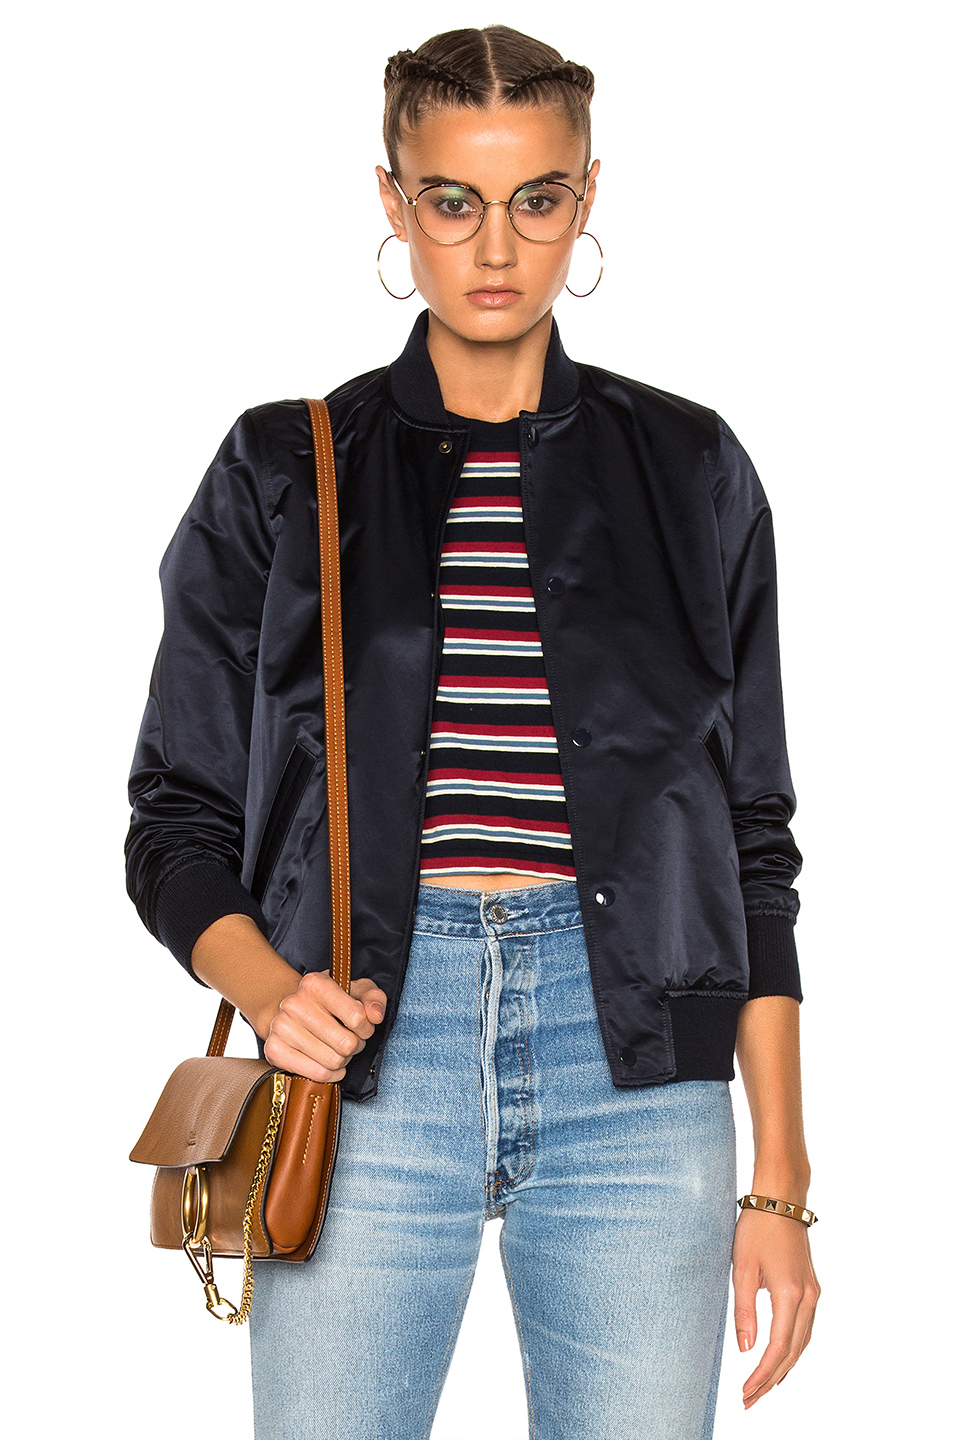 A.P.C. Bomber Jacket in Blue